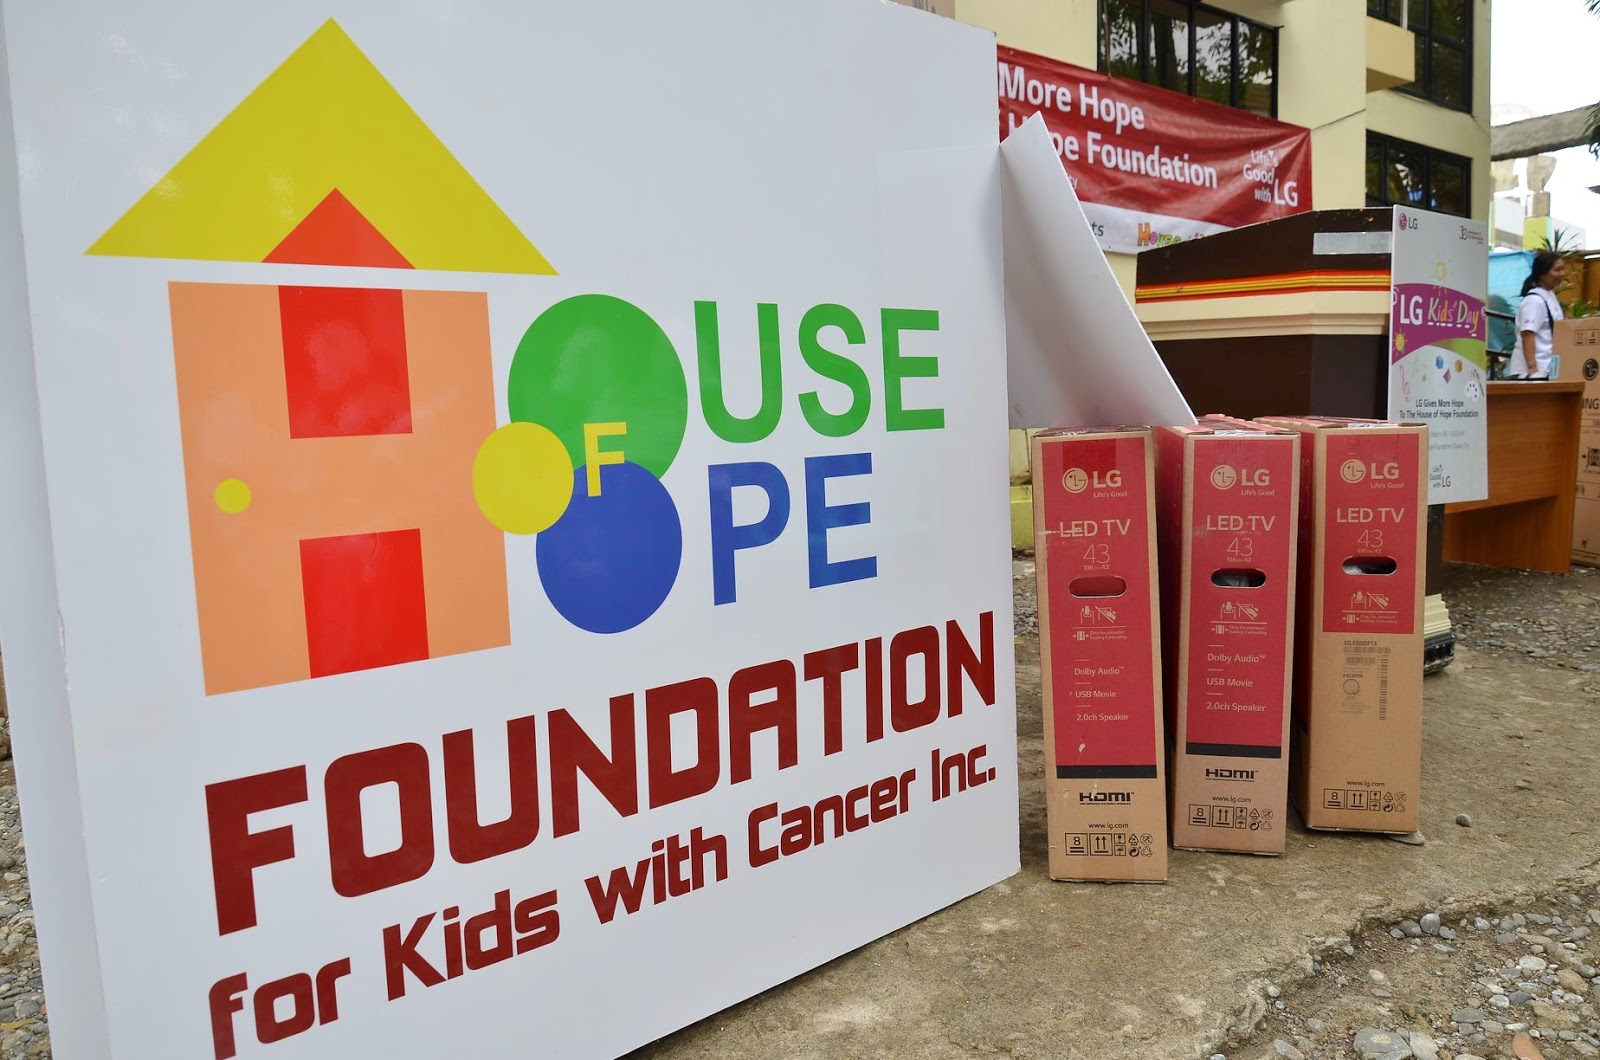 Life's Good for The House of Hope Foundation